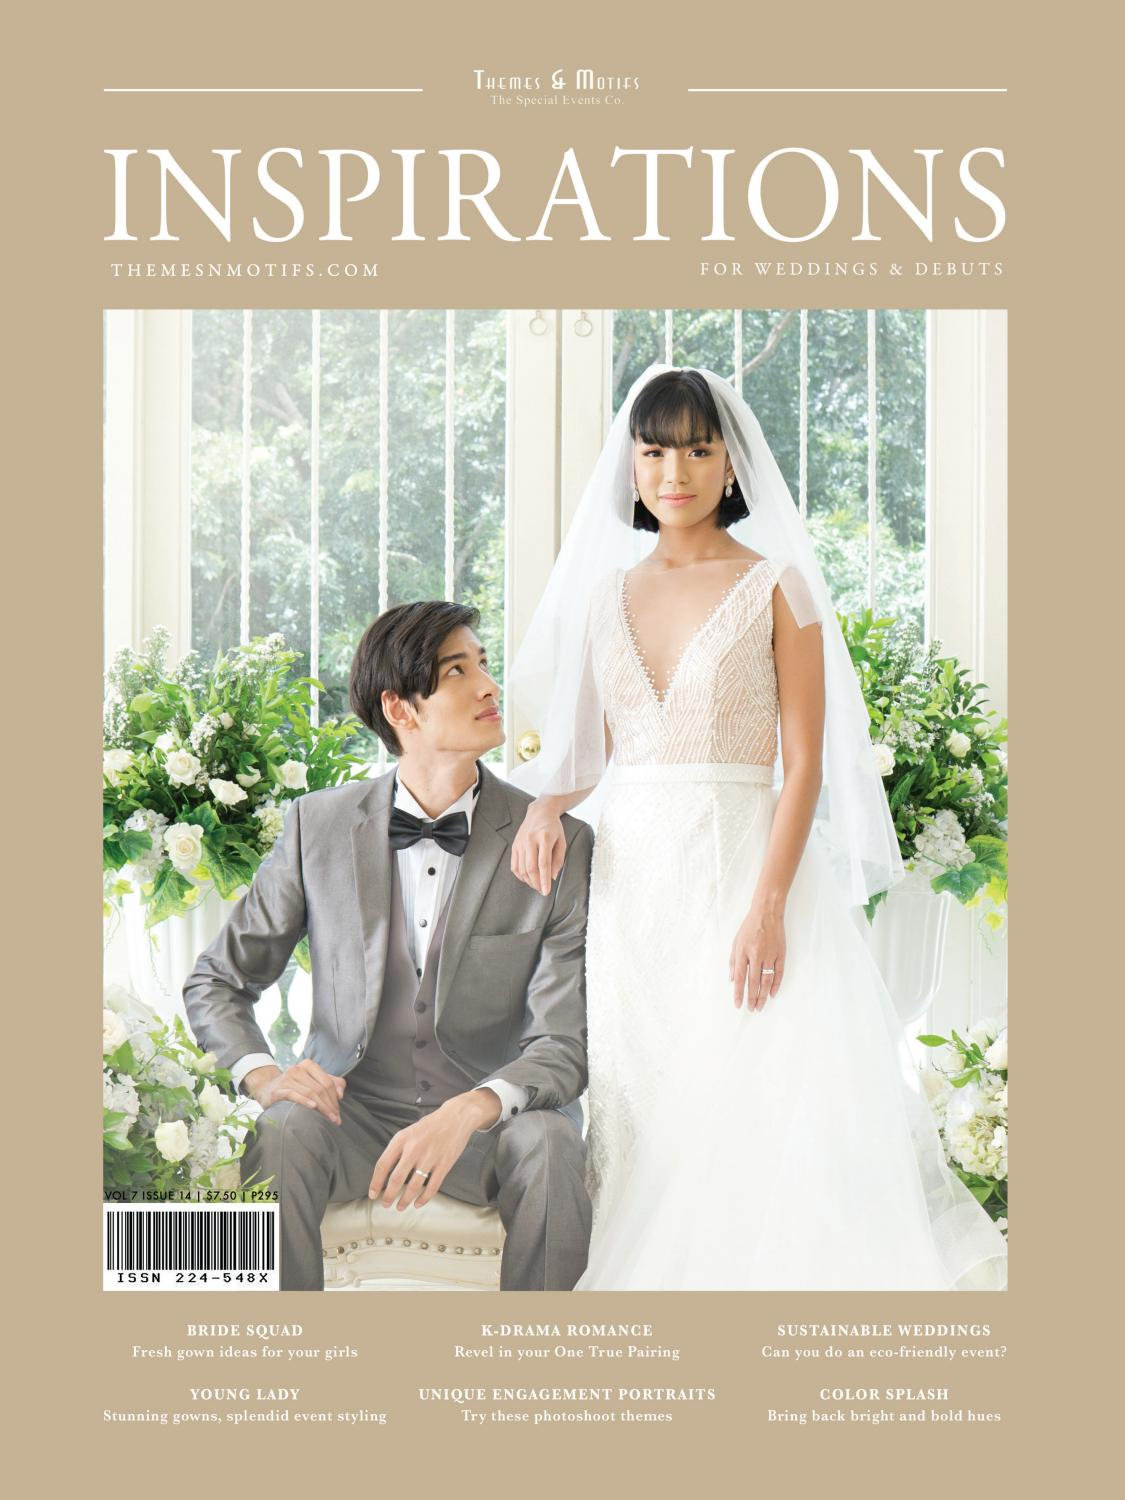 Inspirations For Weddings Debuts Magazine 14th Issue By